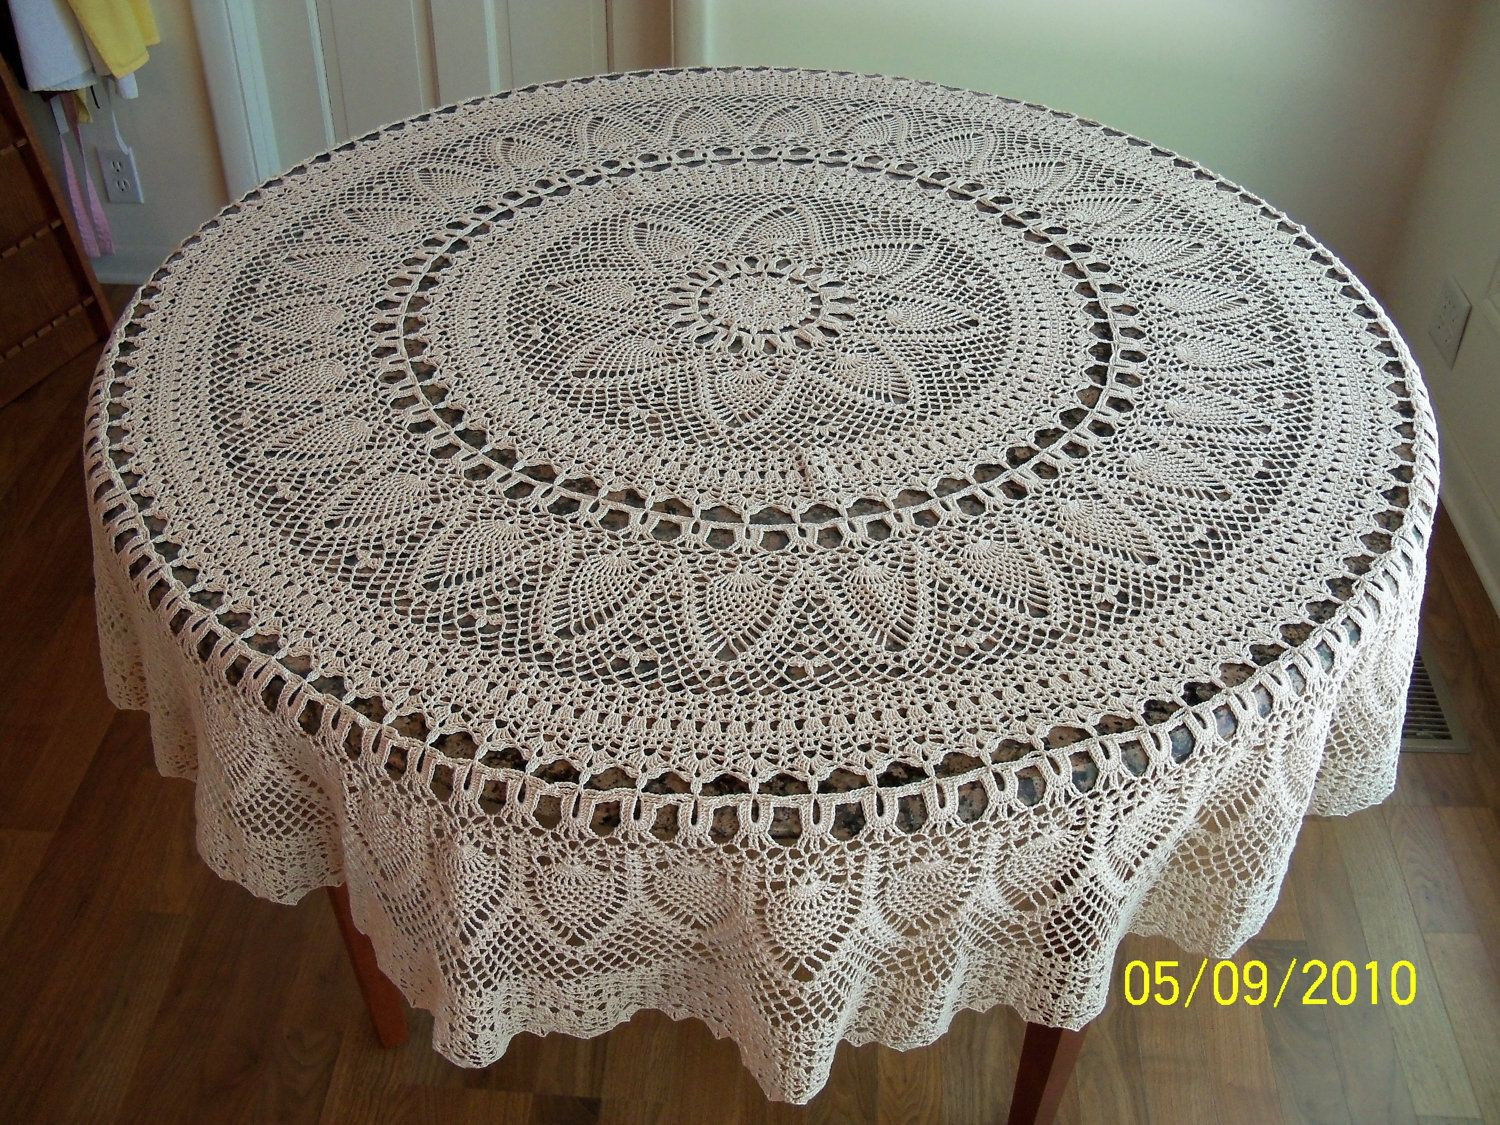 Crochet Tablecloth Inspirational Pineapple Tablecloth Pattern 7650a Of Perfect 43 Images Crochet Tablecloth